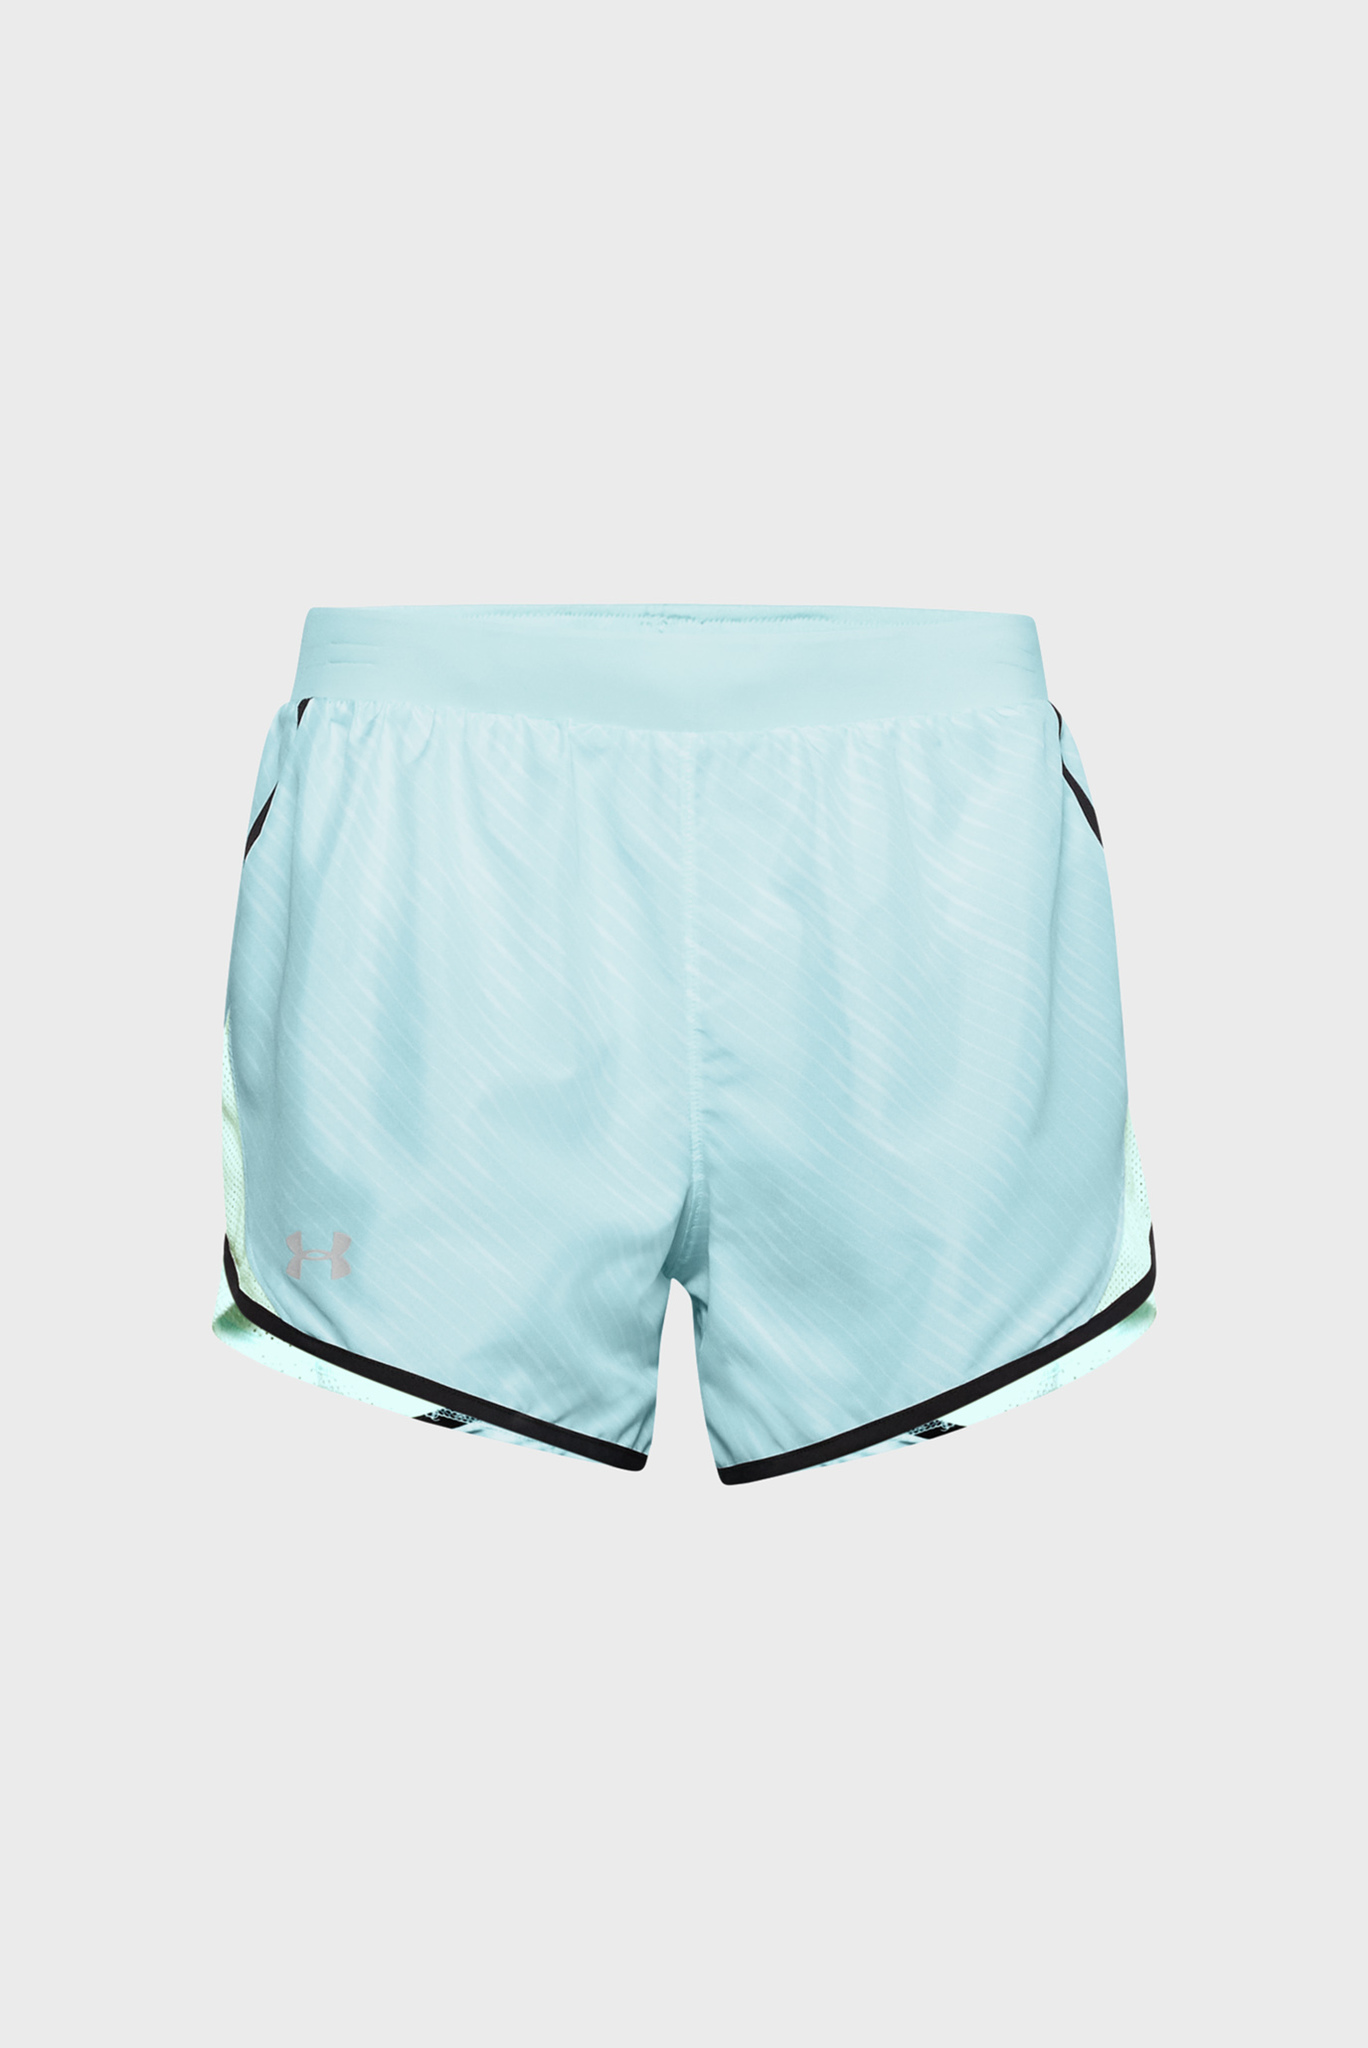 Женские голубые шорты W UA Fly By 2.0 Printed Short-BLU Under Armour